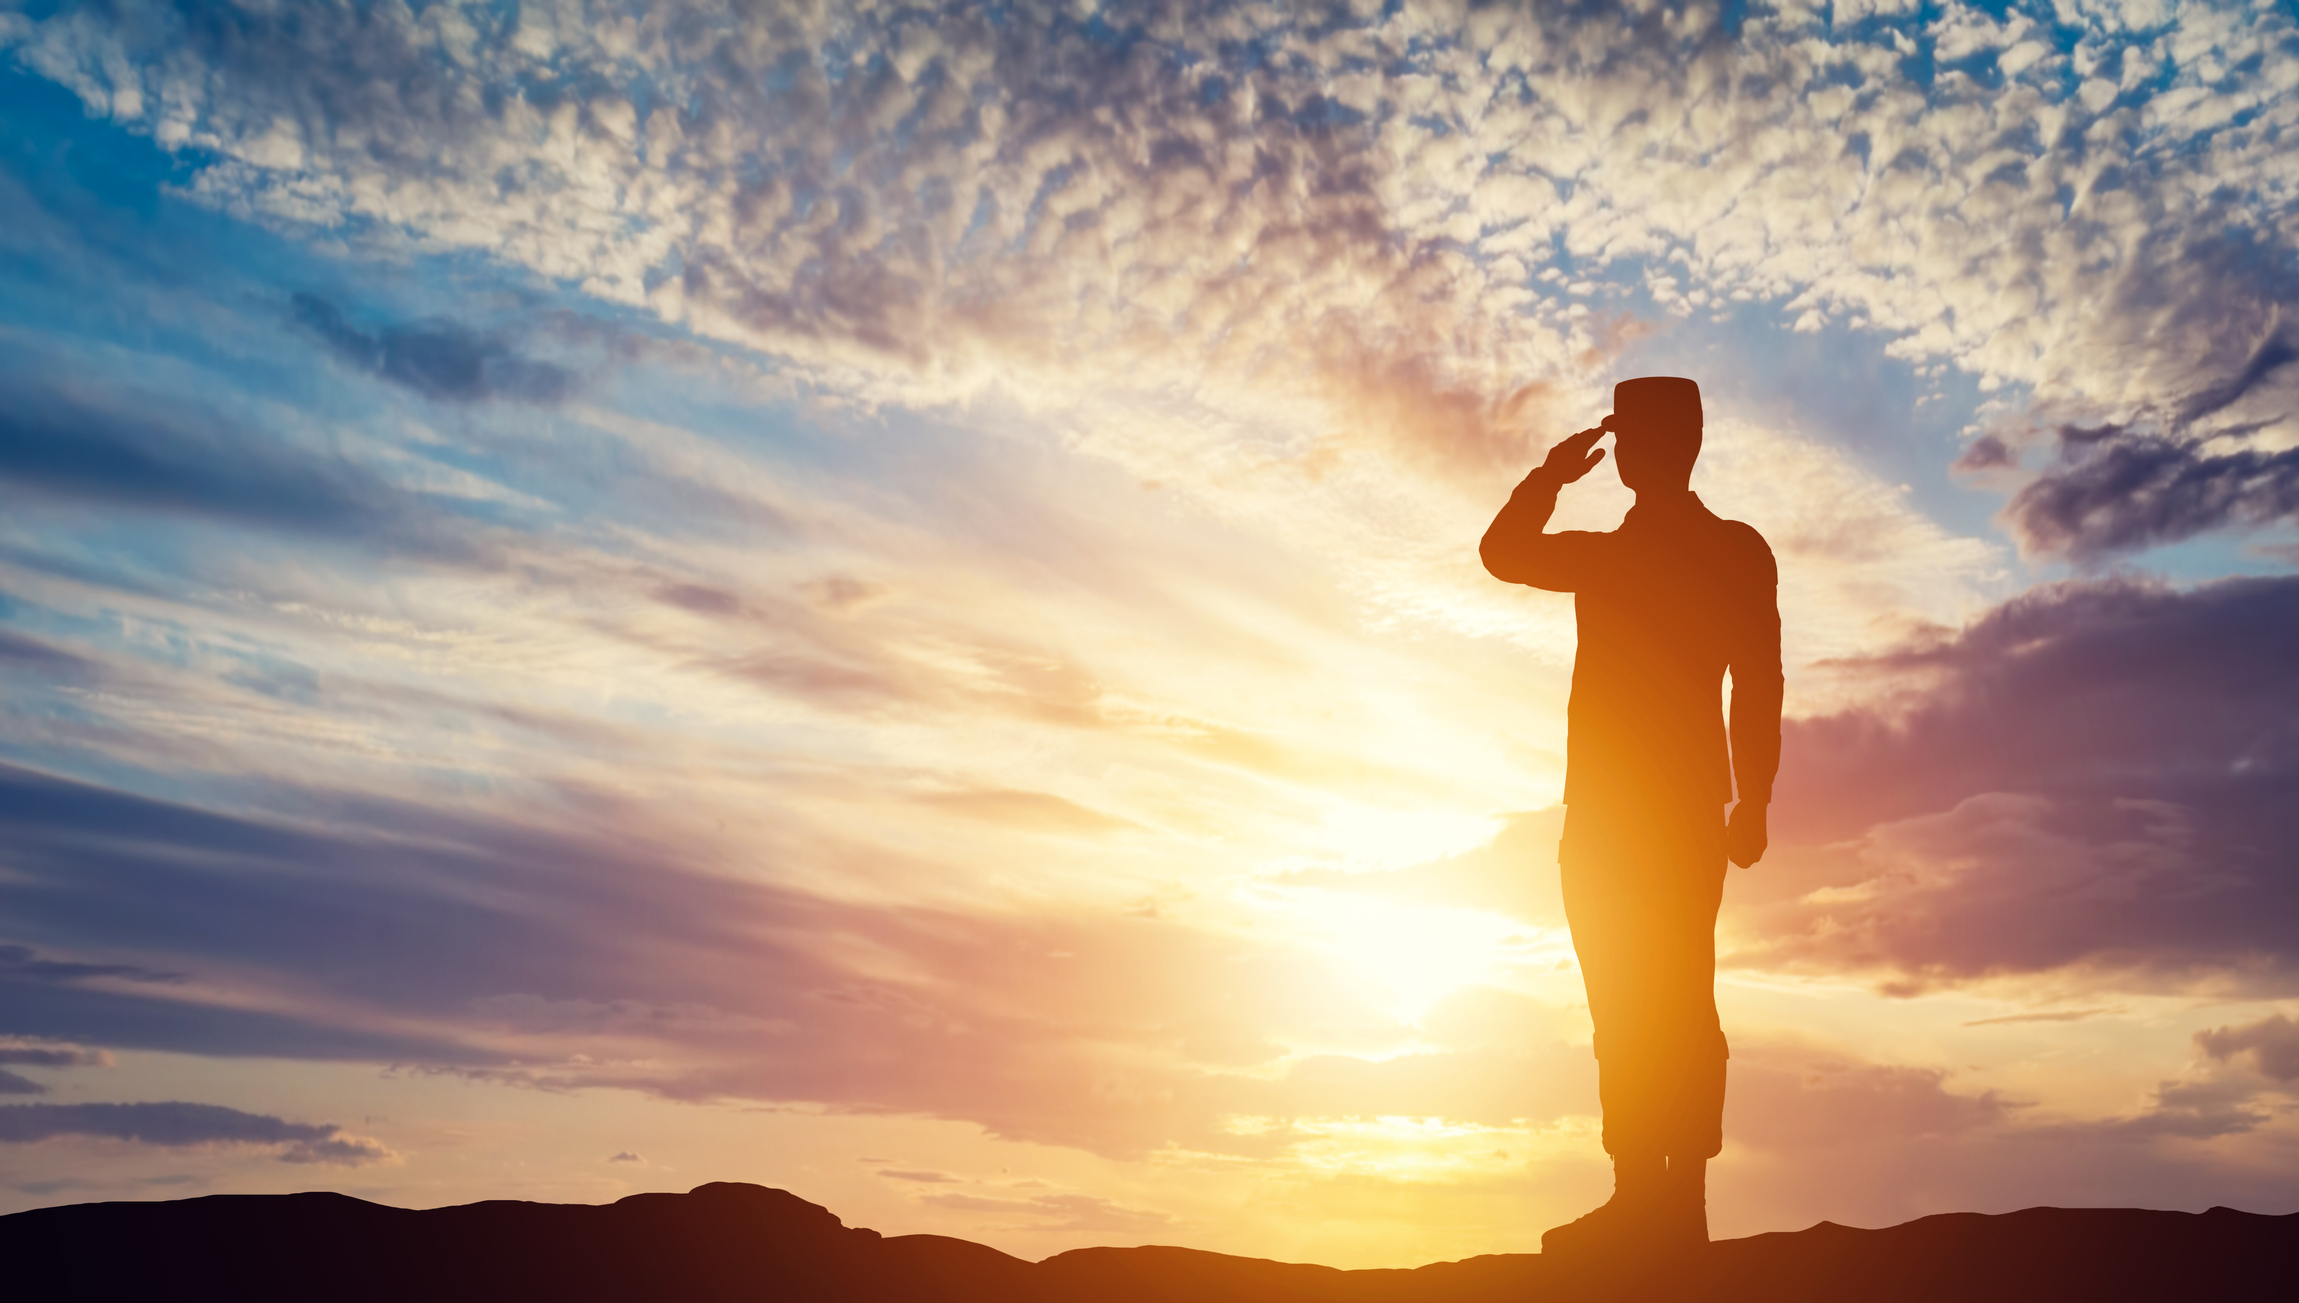 Tenable Celebrates Veterans Day, Launches New Resource for Careers in Cybersecurity